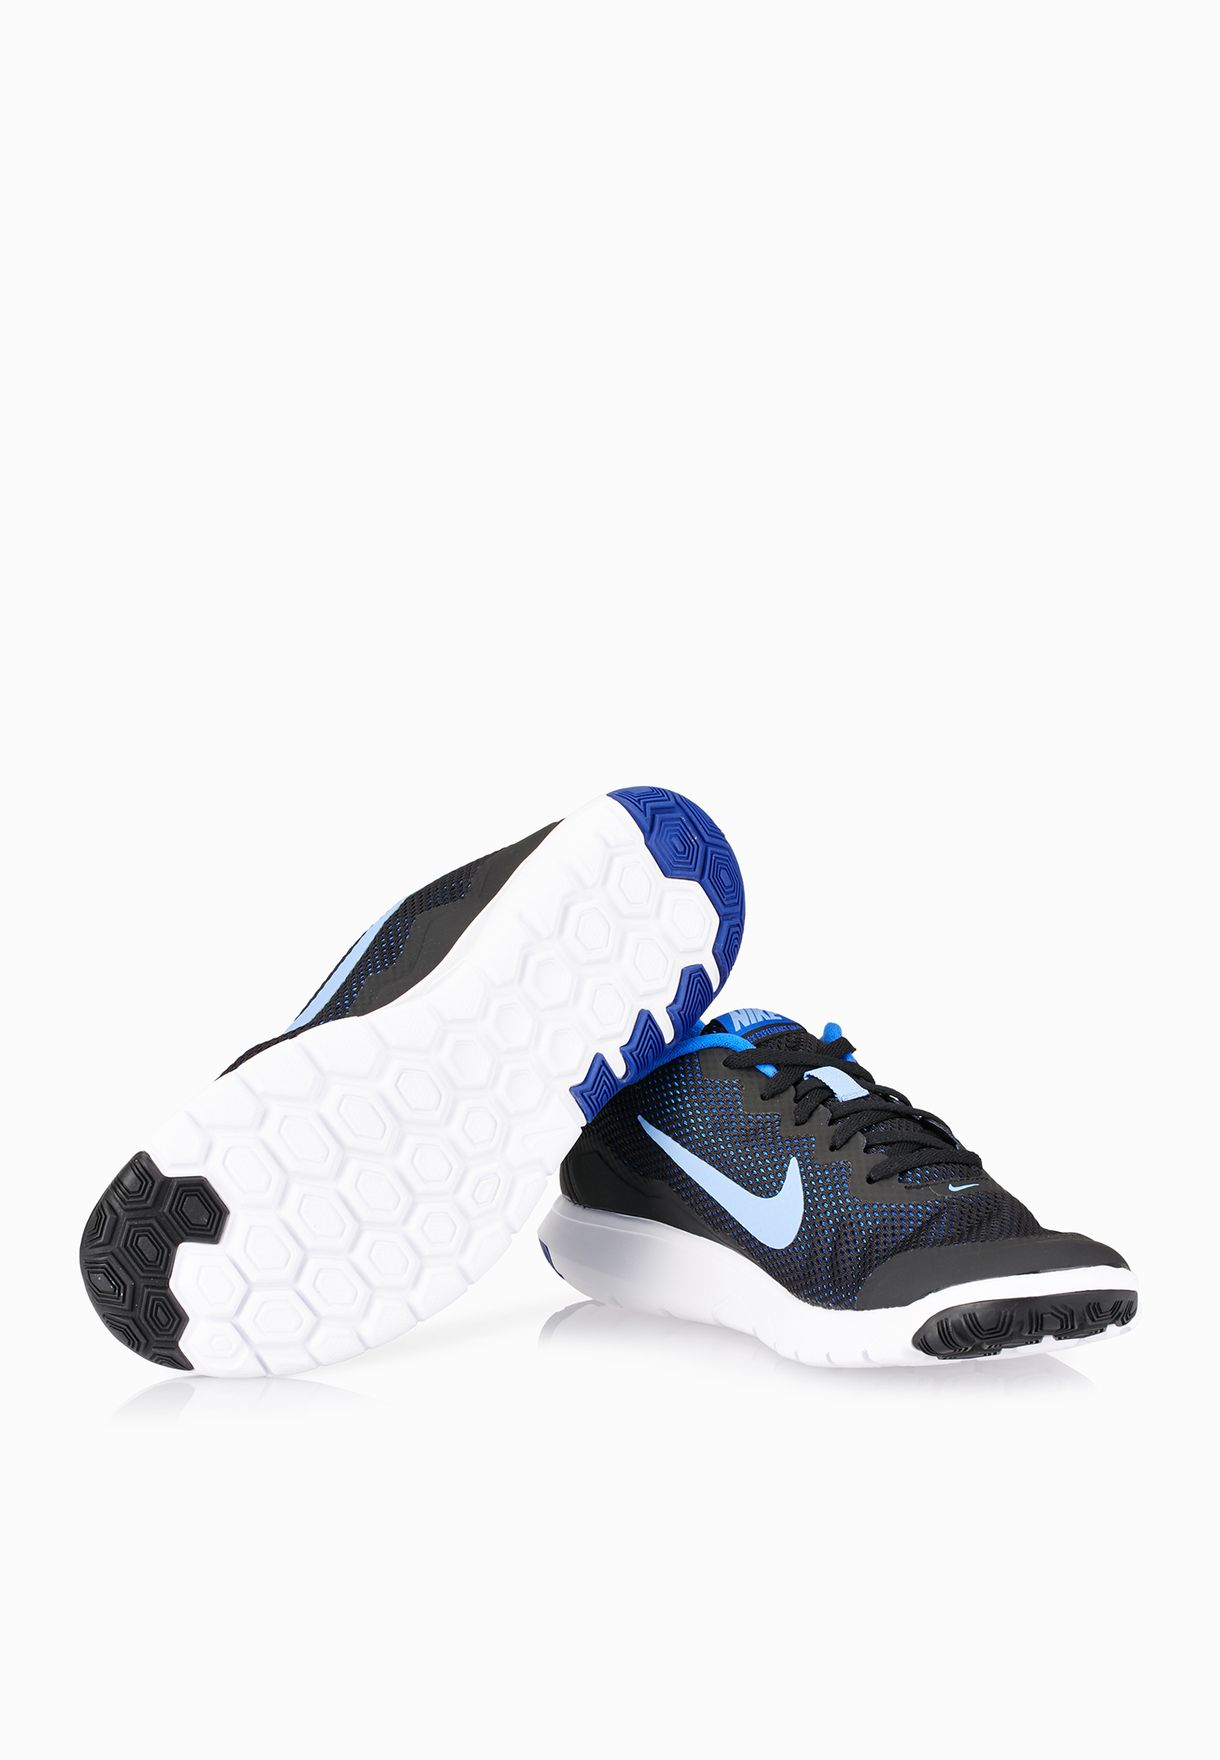 a80cc8433046a Shop Nike black Flex Experience Rn 4 749178-014 for Women in Kuwait ...